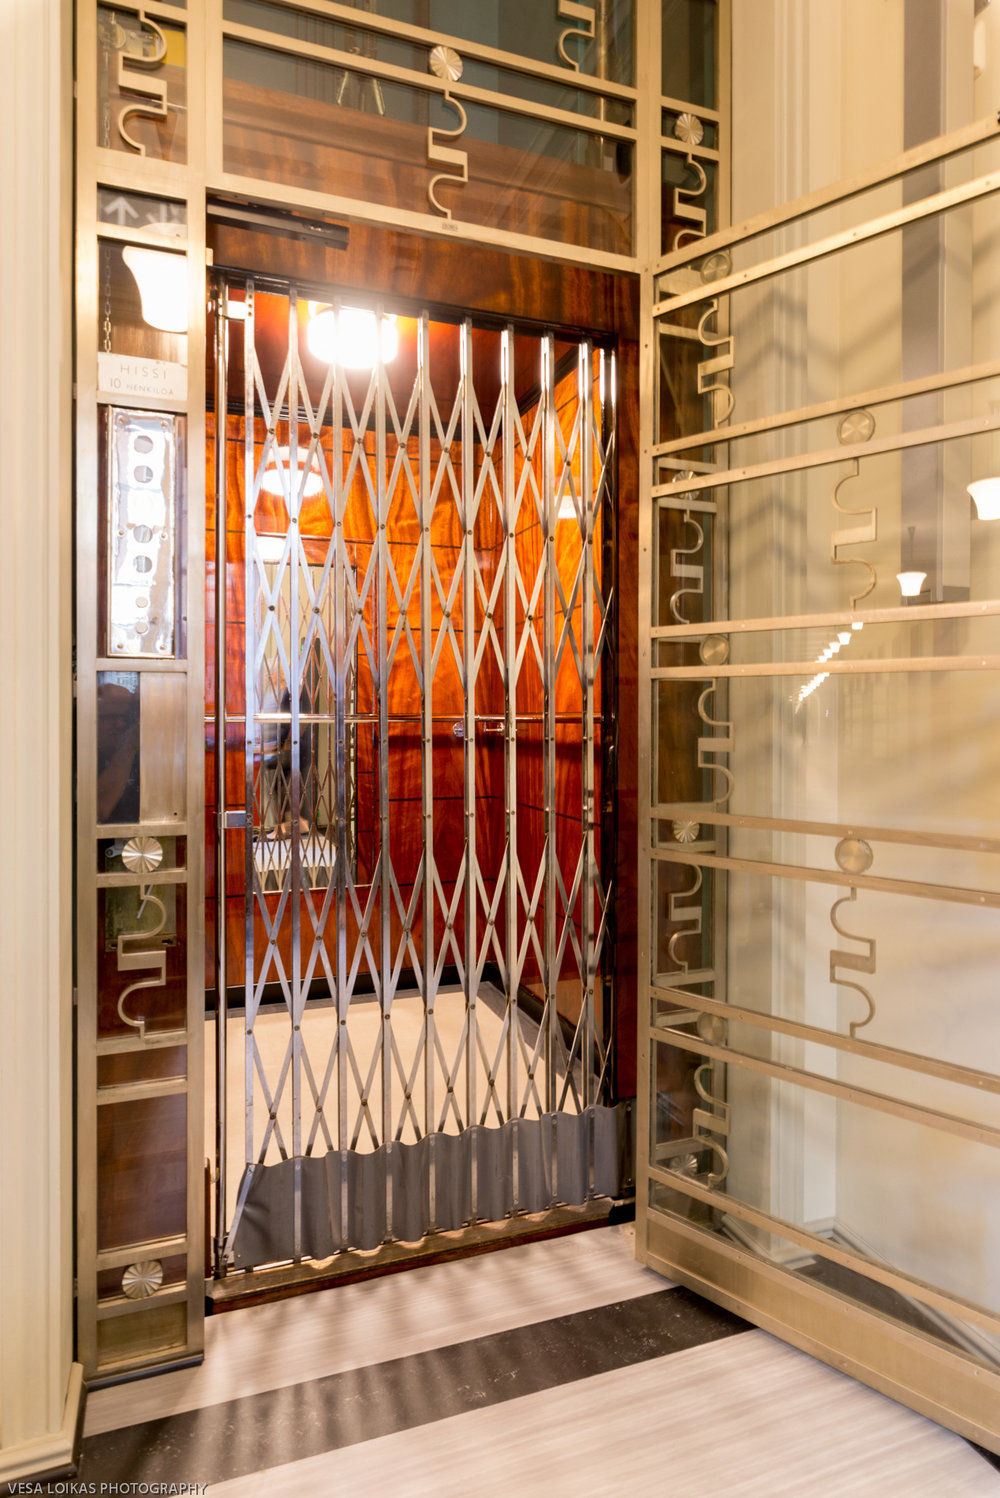 Decorative elevator doors and interiors.